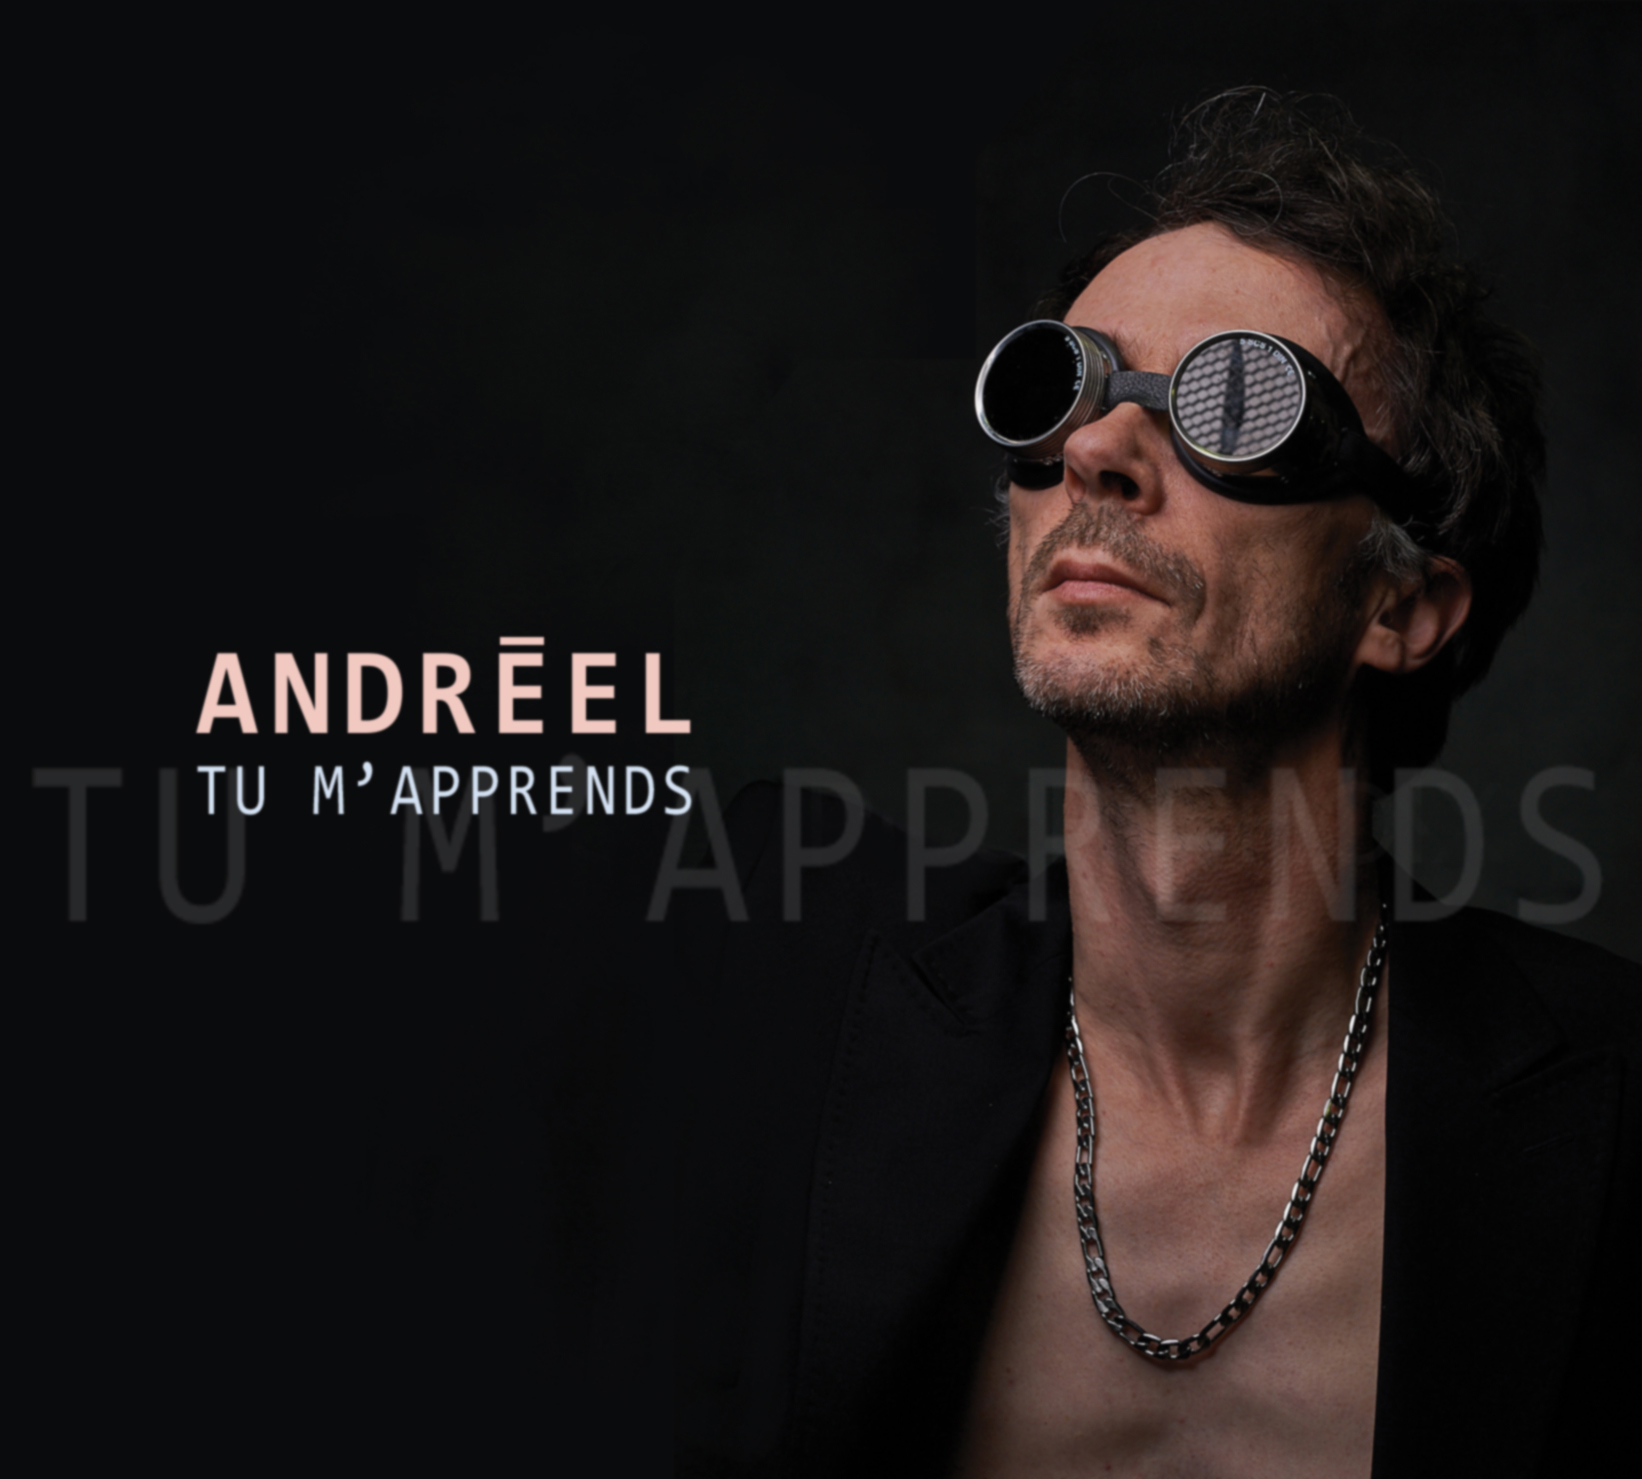 Andréel - Tu m'apprends